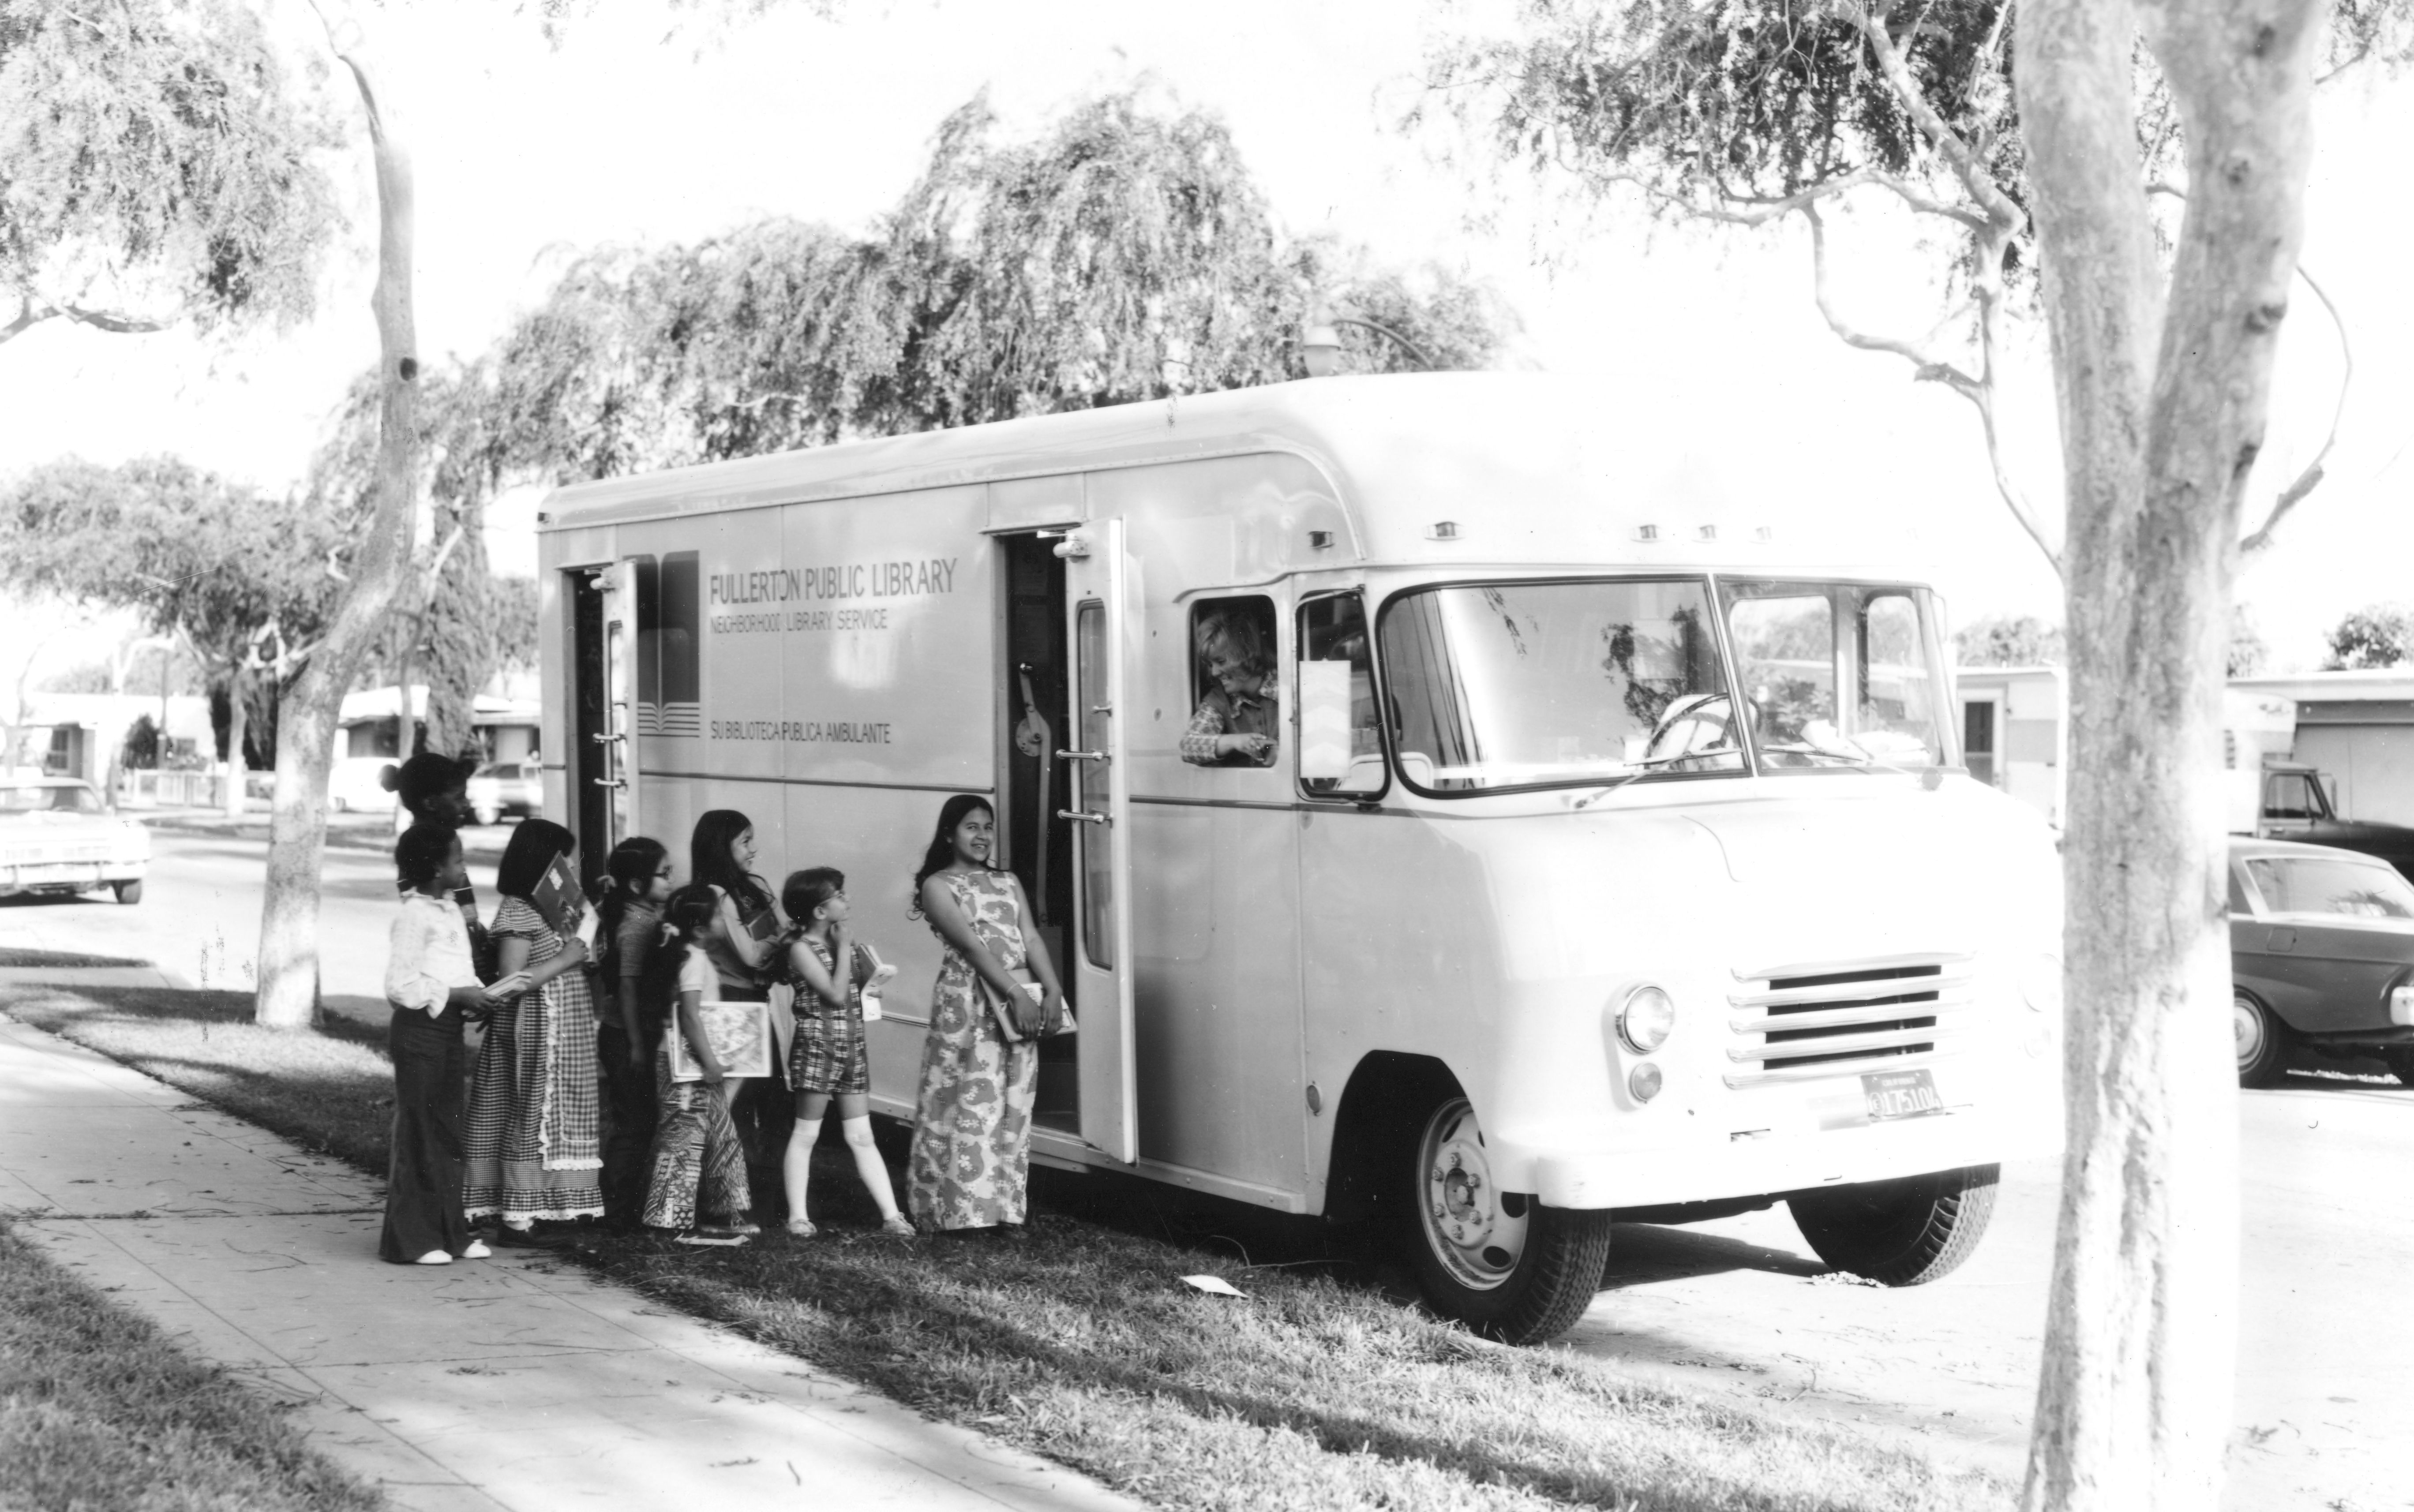 In 1957, Fullerton started the first bookmobile service in Orange County.  Bookmobile librarian Barbara Weber, who connected readers with books for over 35 years, is shown here in 1973 at the Valencia and Lemon Avenues stop in Fullerton's second bookmobile.